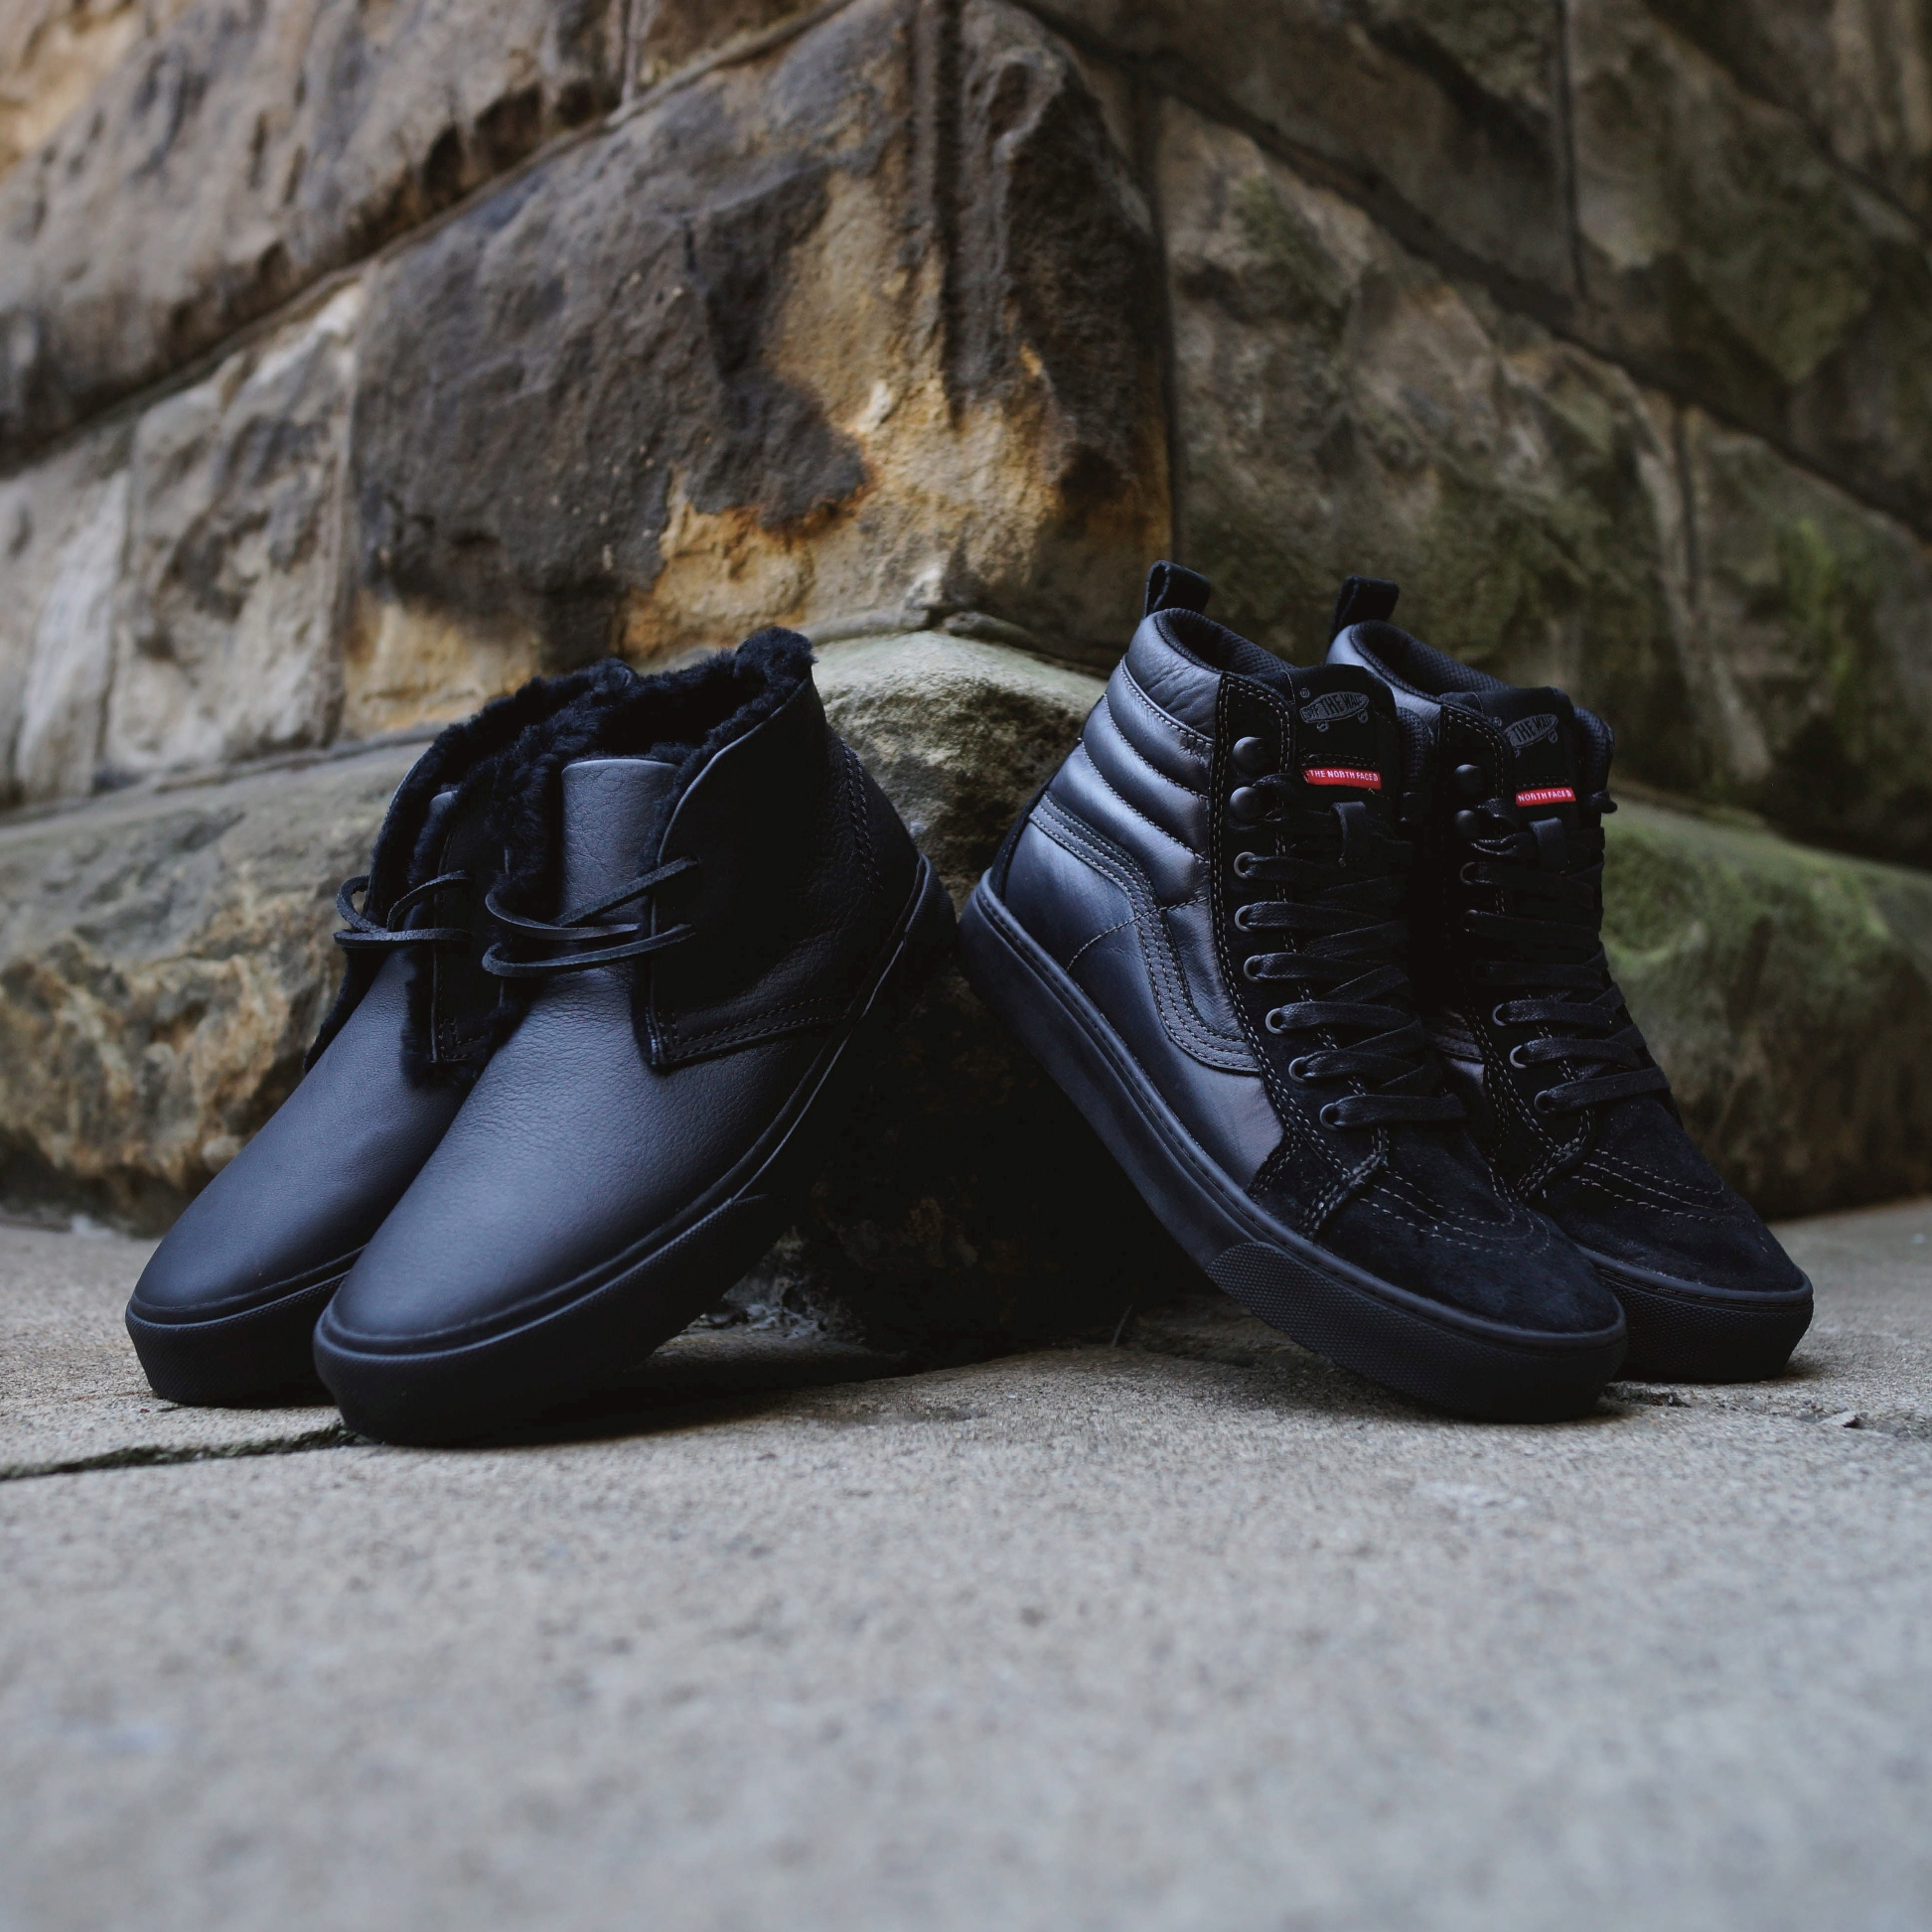 83d679c6c Vans Vault x The North Face – Sk8-Hi MTE LX (exclusive pics by ...